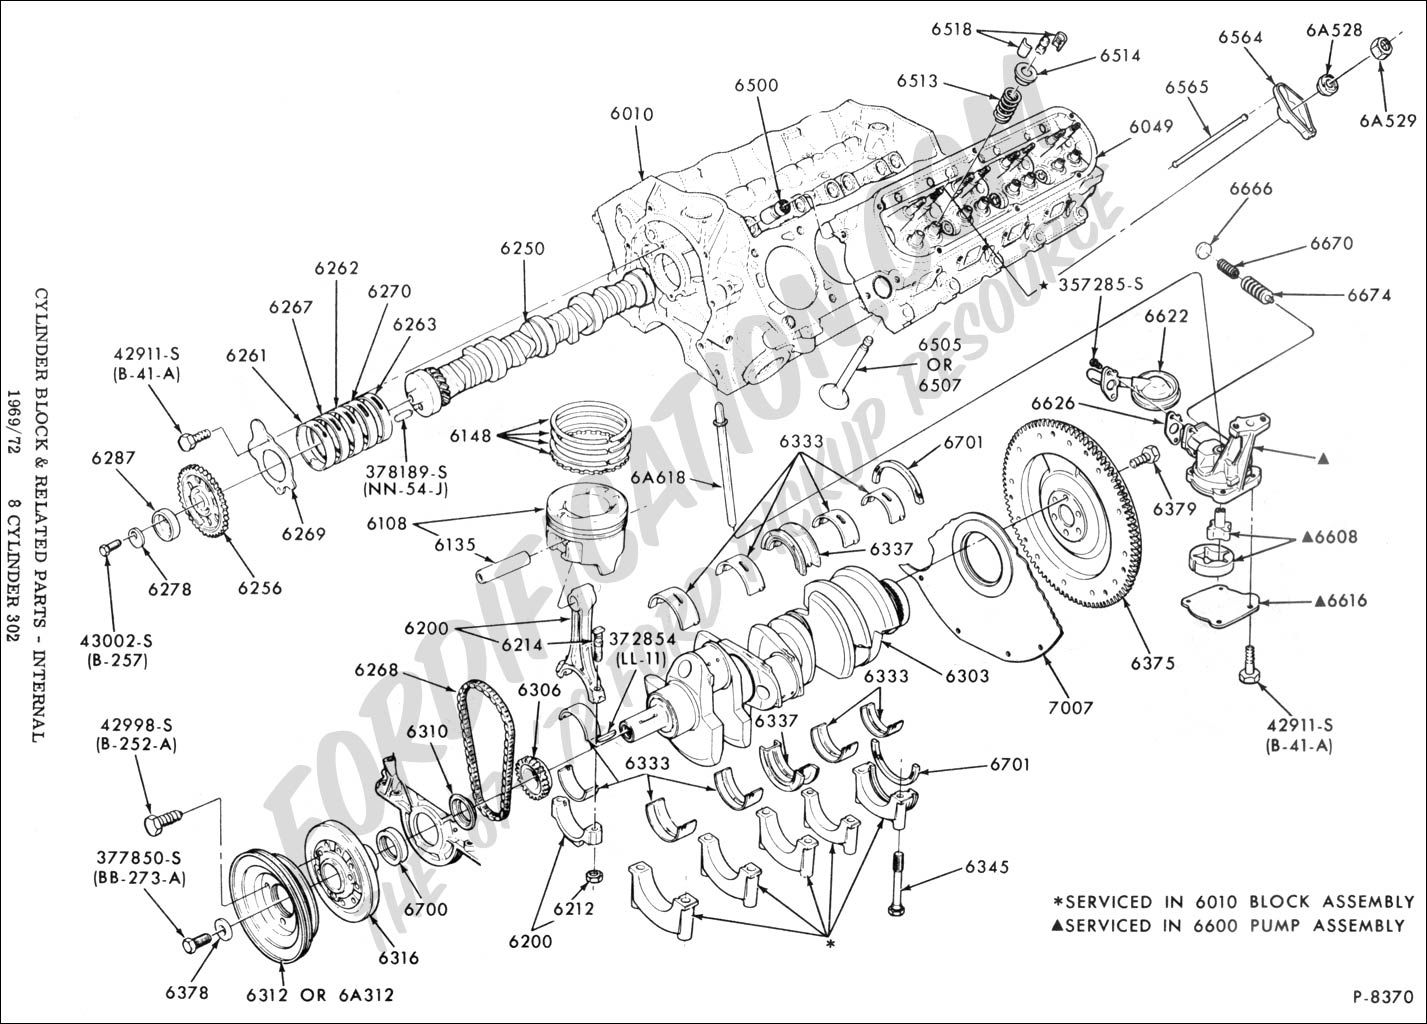 ford 302 engine parts diagram wiring diagram lyc engine parts diagram 302 wiring diagram imp ford [ 1427 x 1024 Pixel ]